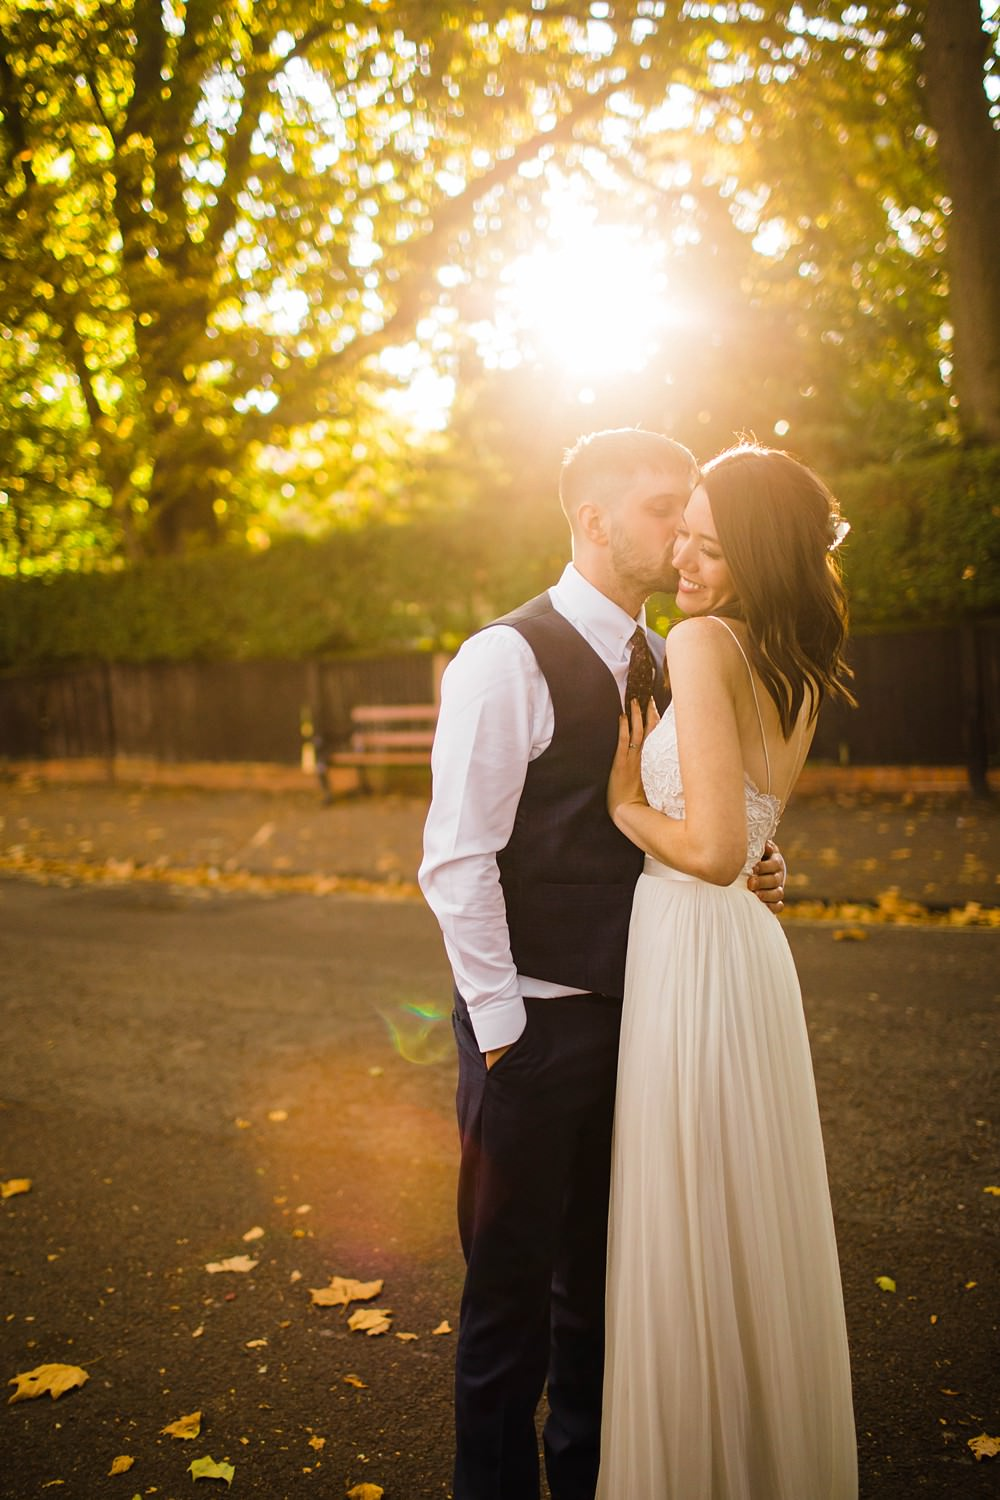 Dress Gown Bride Bridal Two Piece Top Skirt Catherine Deane Cherwell Boathouse Wedding Claudia Rose Carter Photography